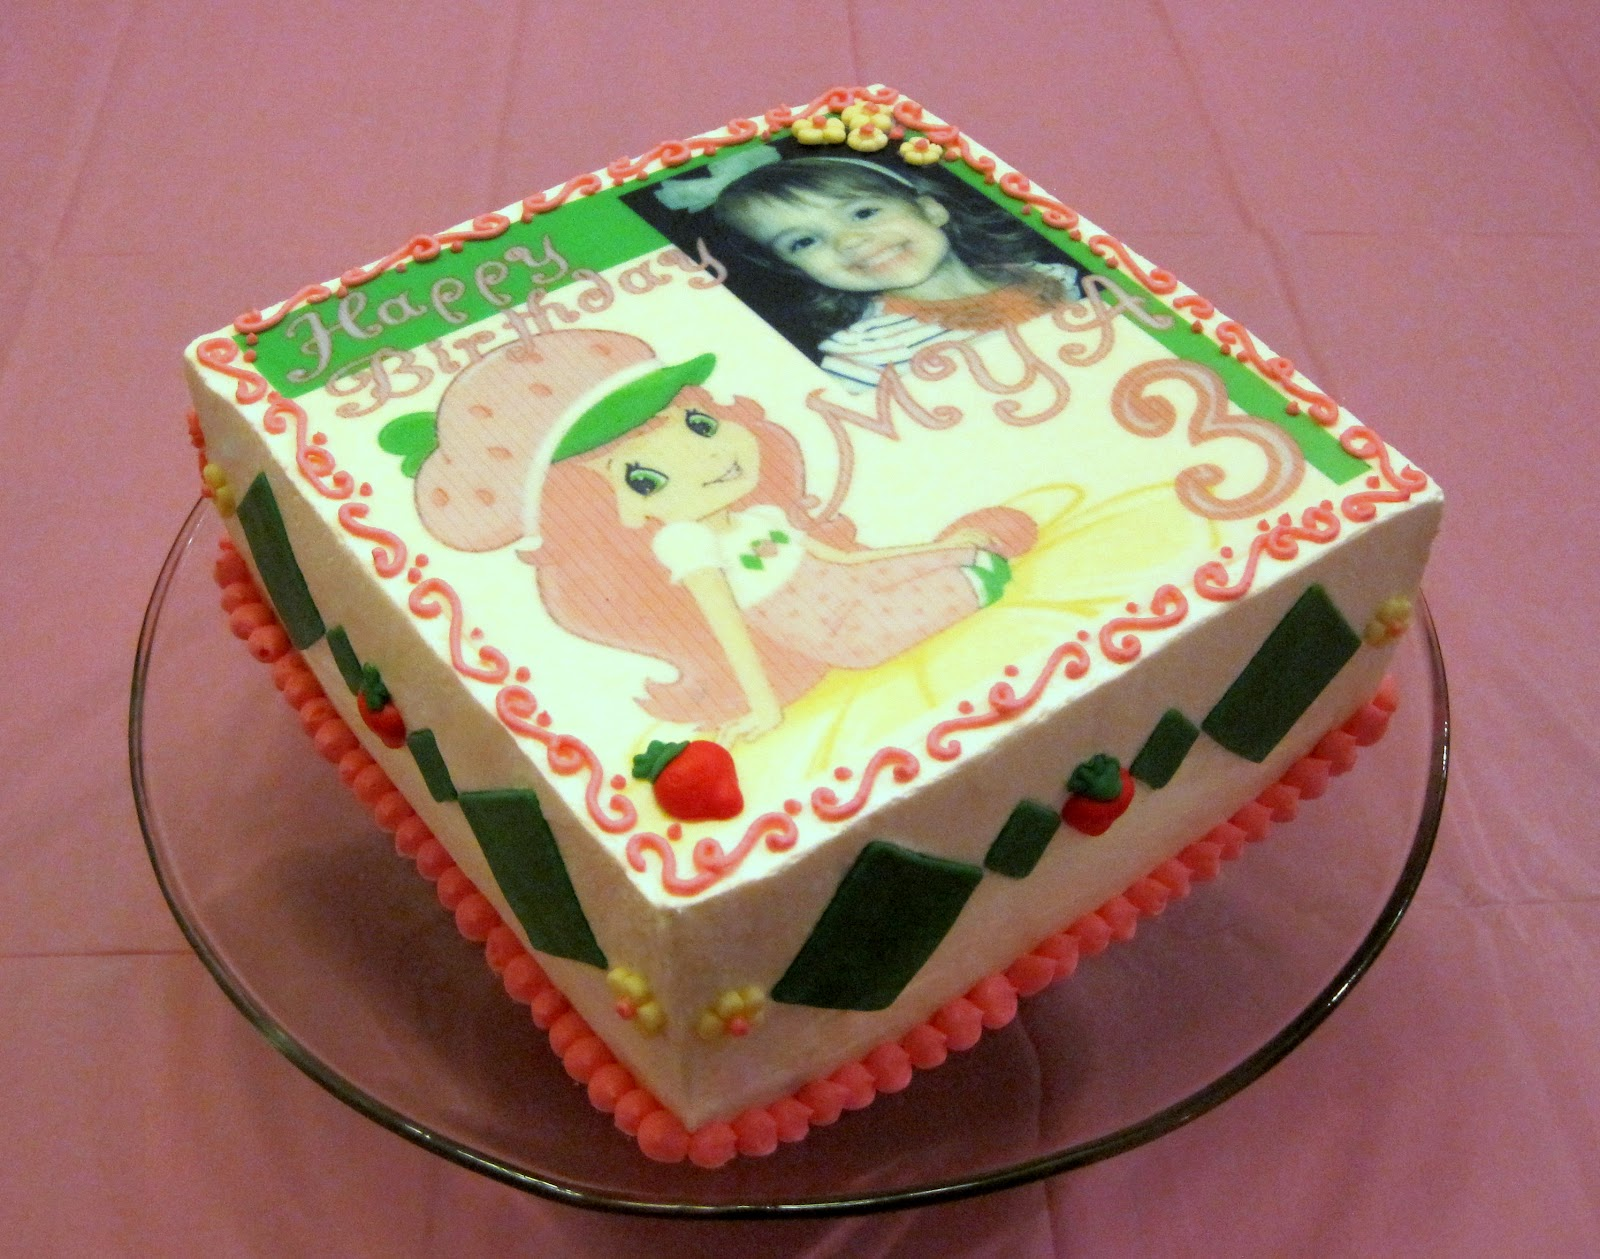 Custom Cake Images Edible : Custom Cakes By Stef: Strawberry Shortcake - edible pictures